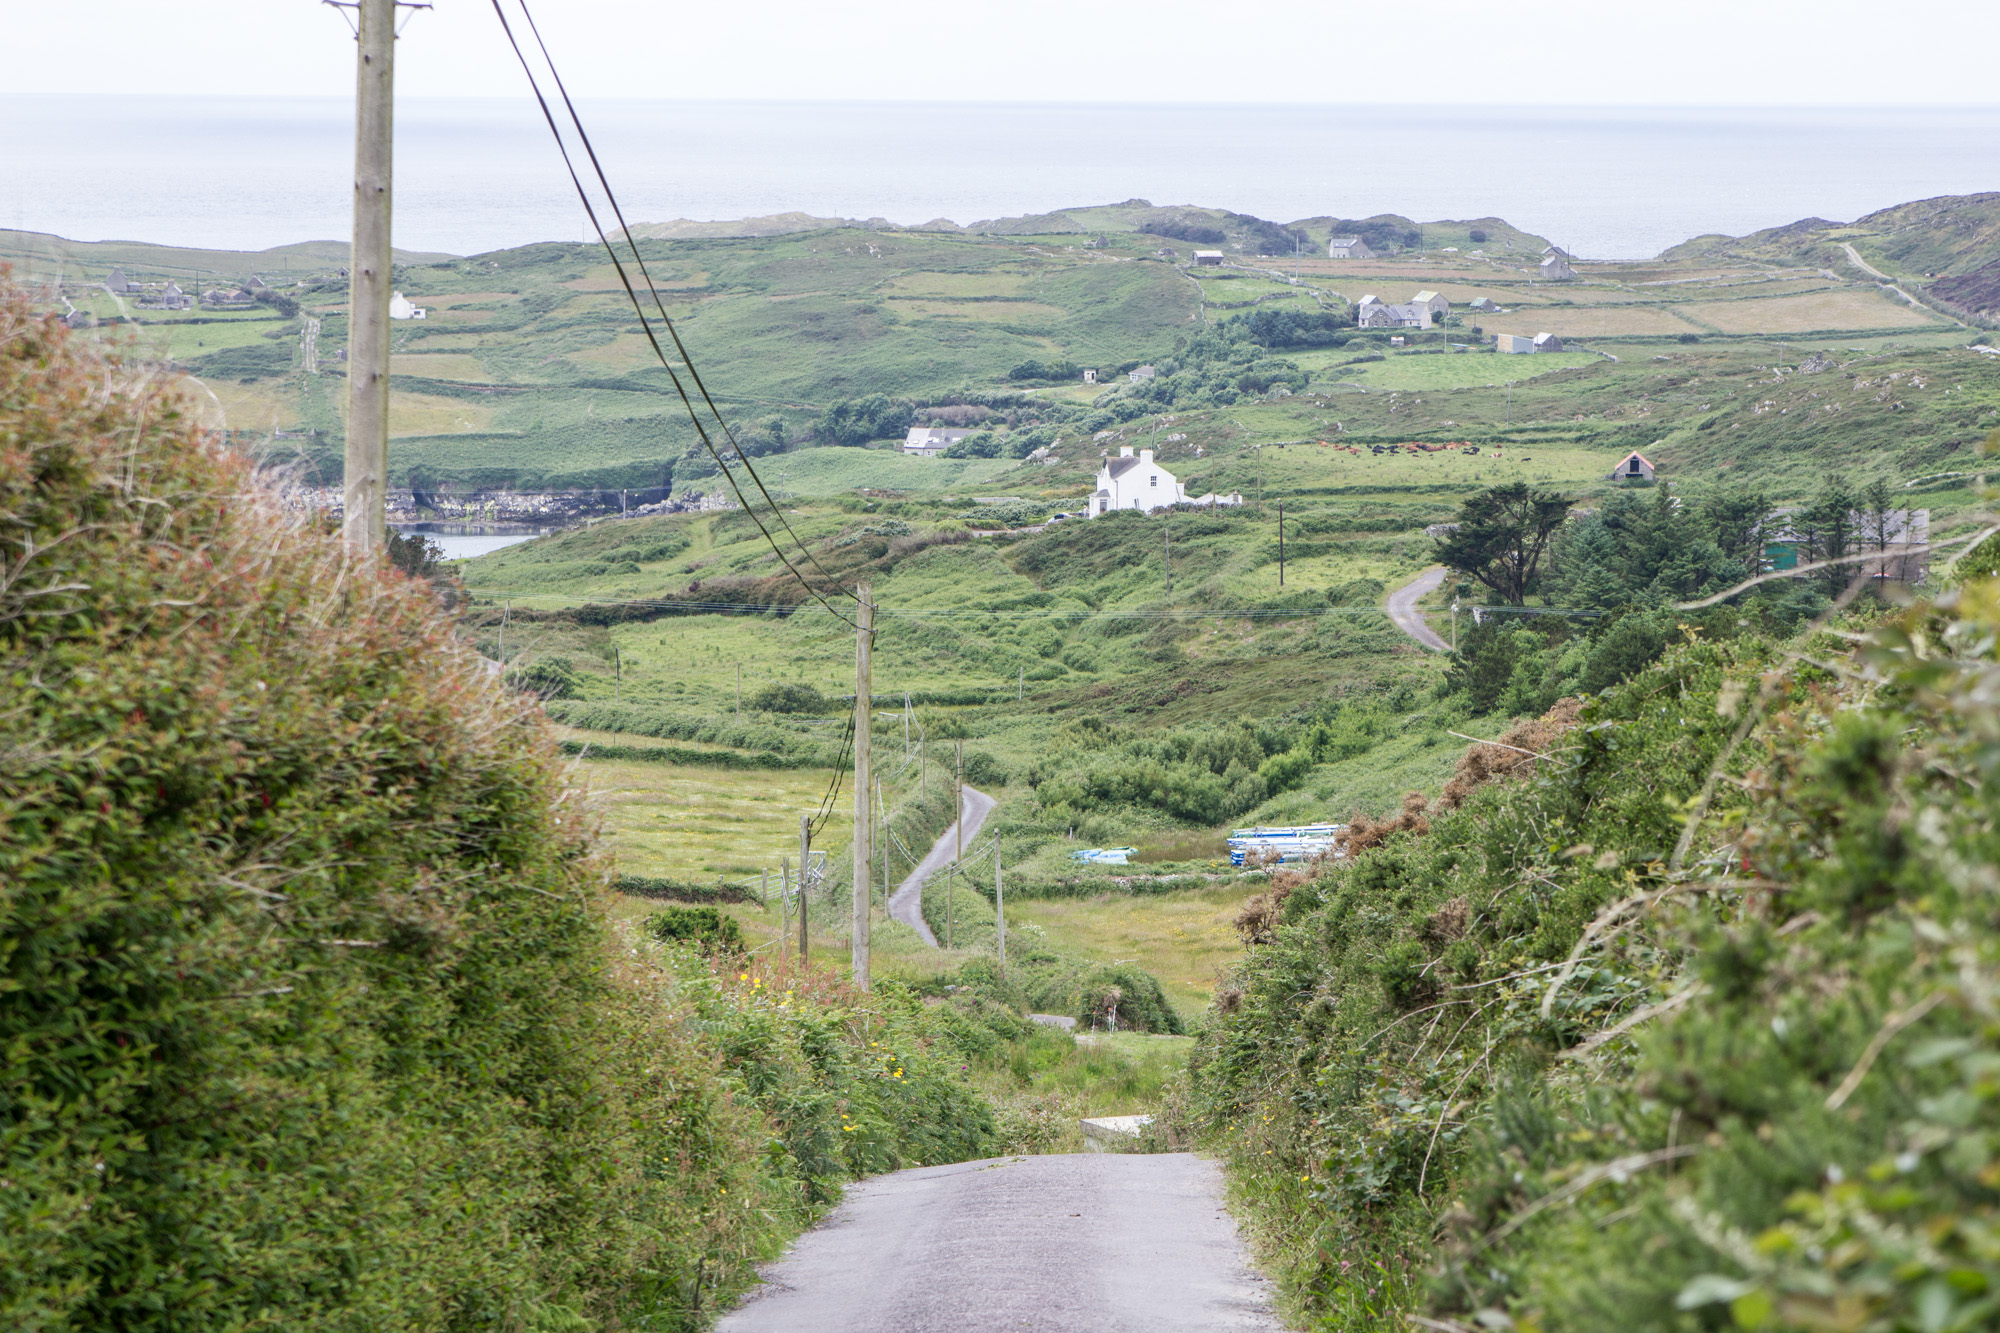 View of grass and houses in the countryside from a high road in Cape Clear Island in Ireland